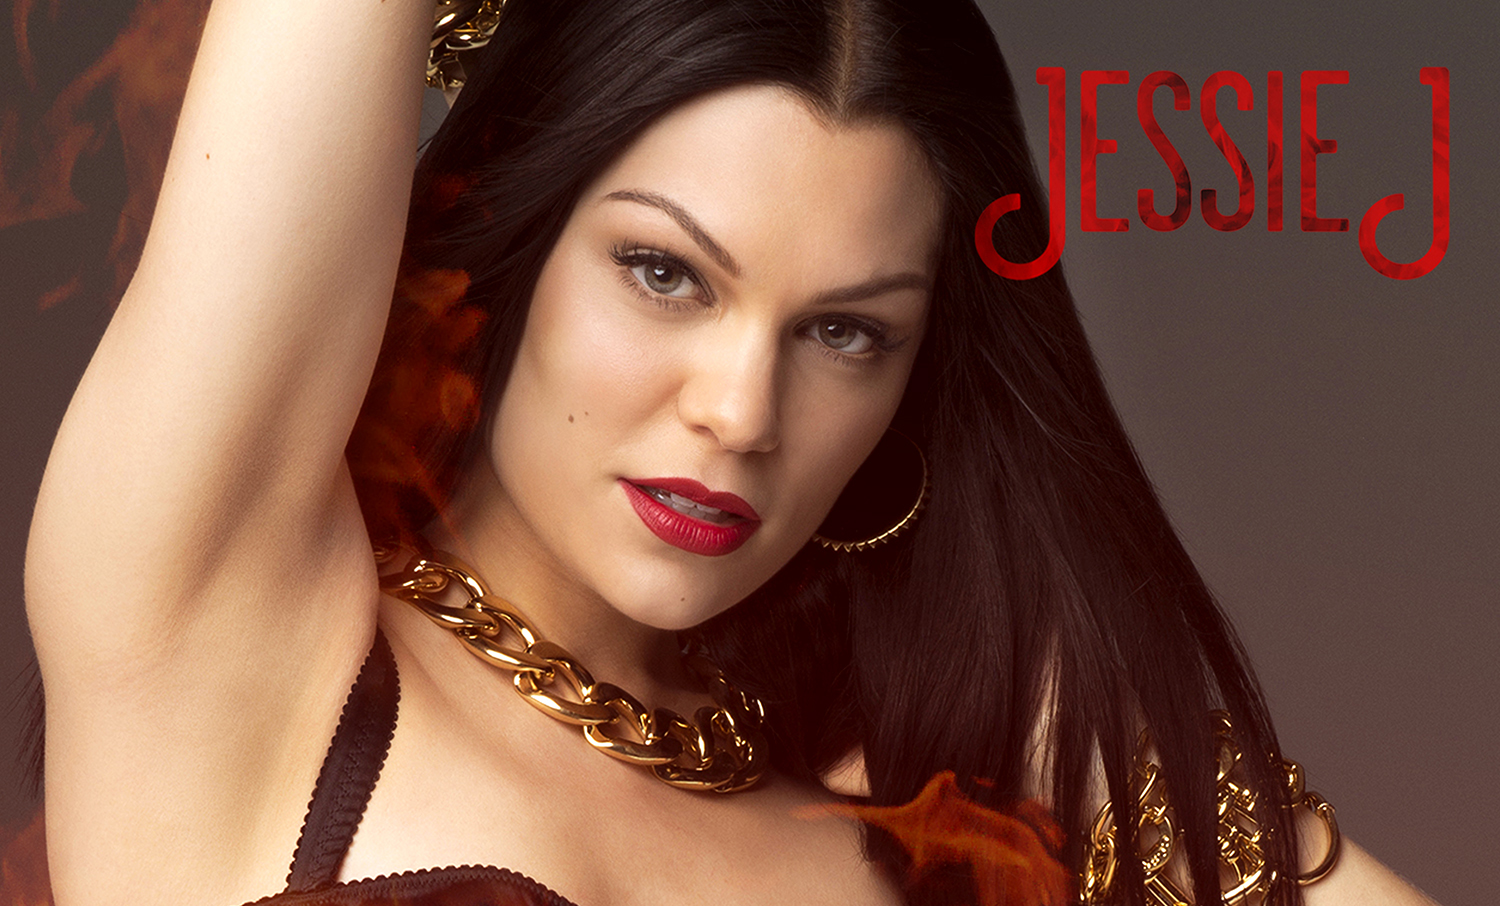 Jessie J New Music And Songs Mtv | newhairstylesformen2014.com